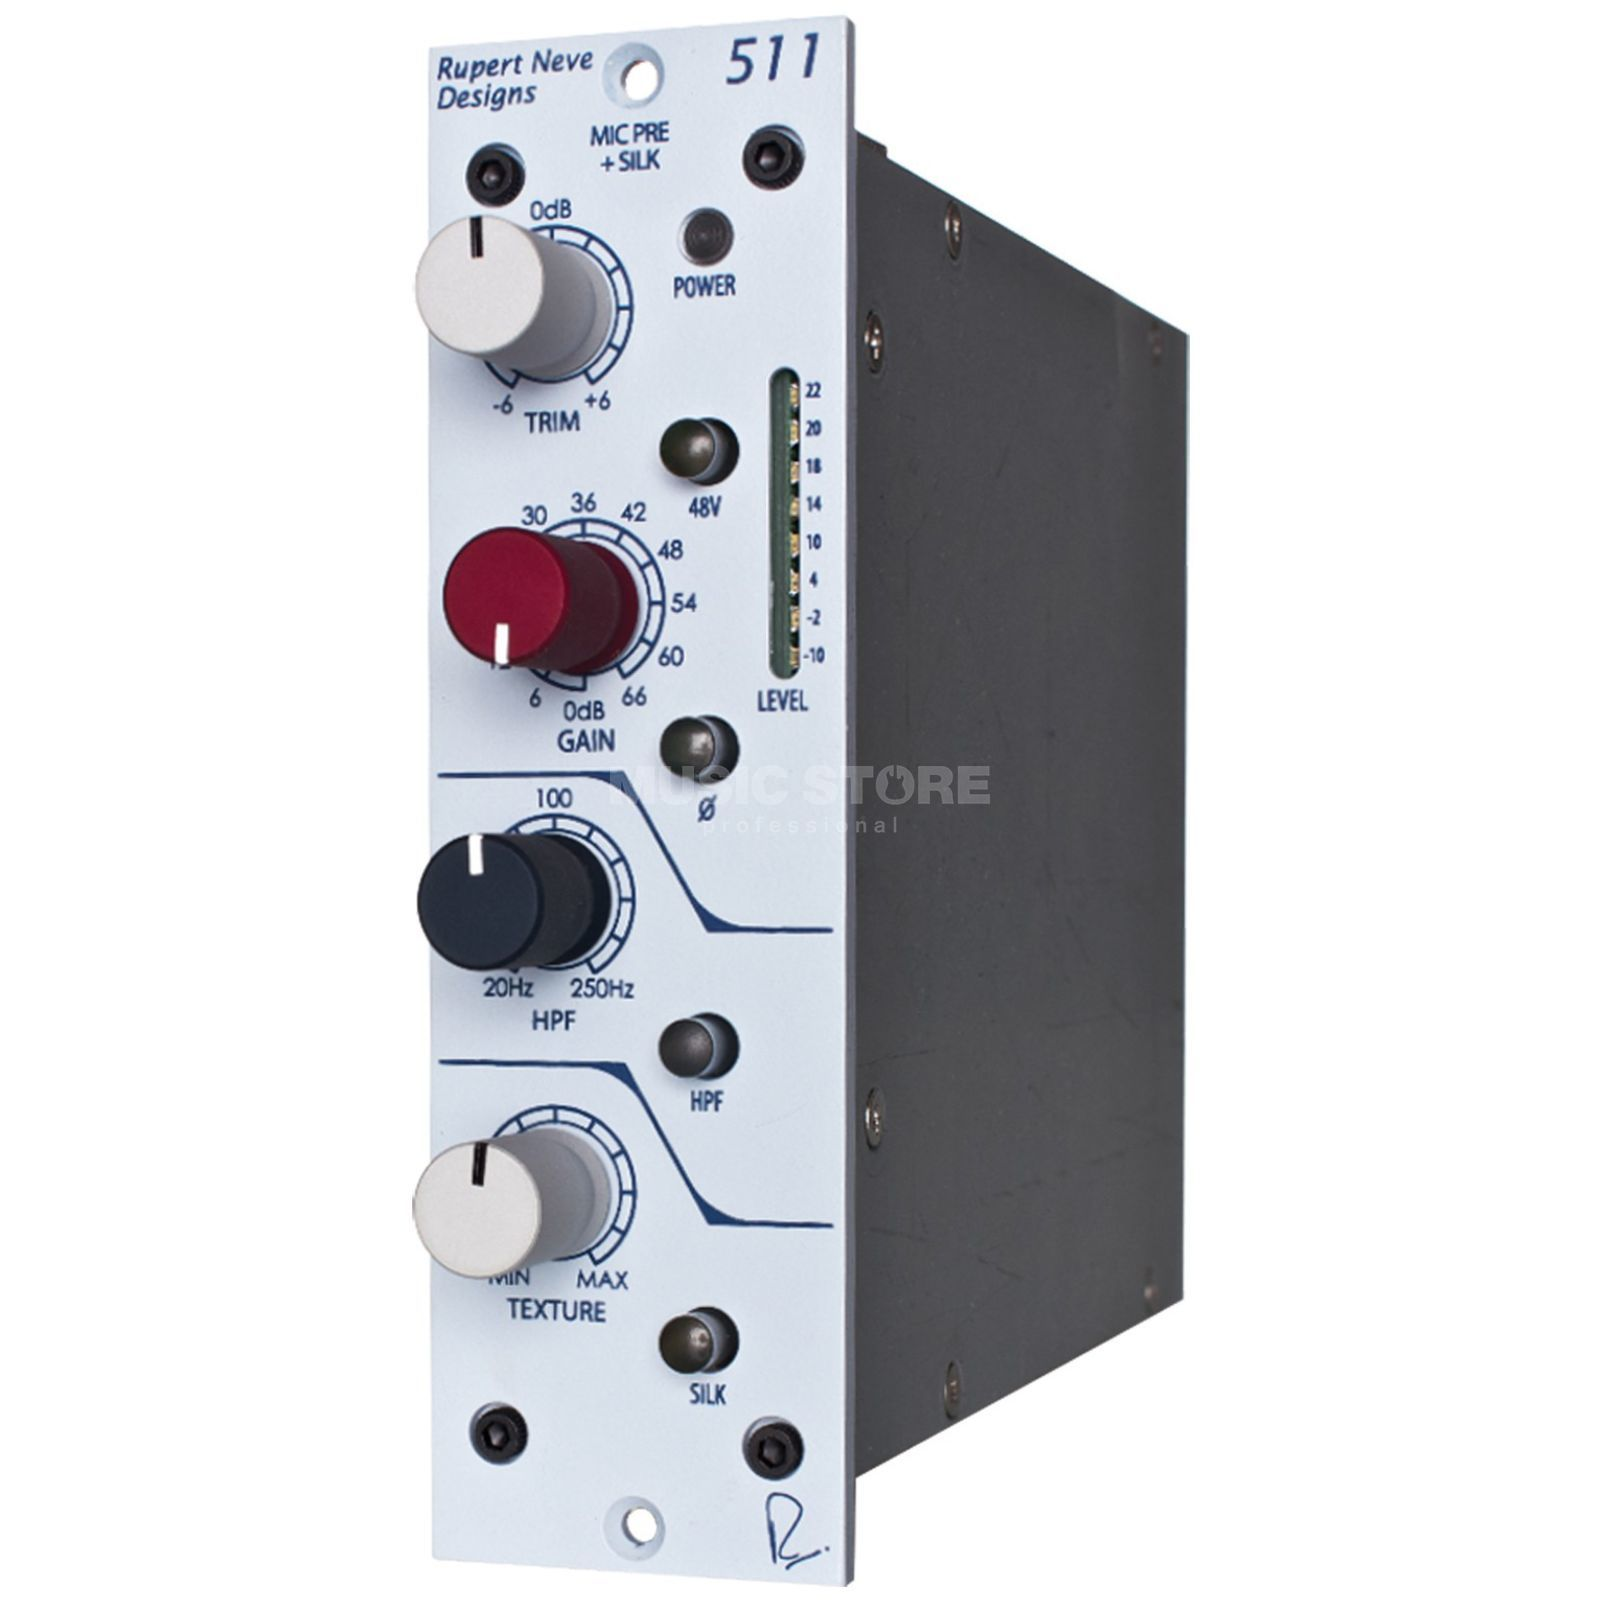 Rupert Neve Designs Portico 511 Preamp for the 500 Series Produktbillede